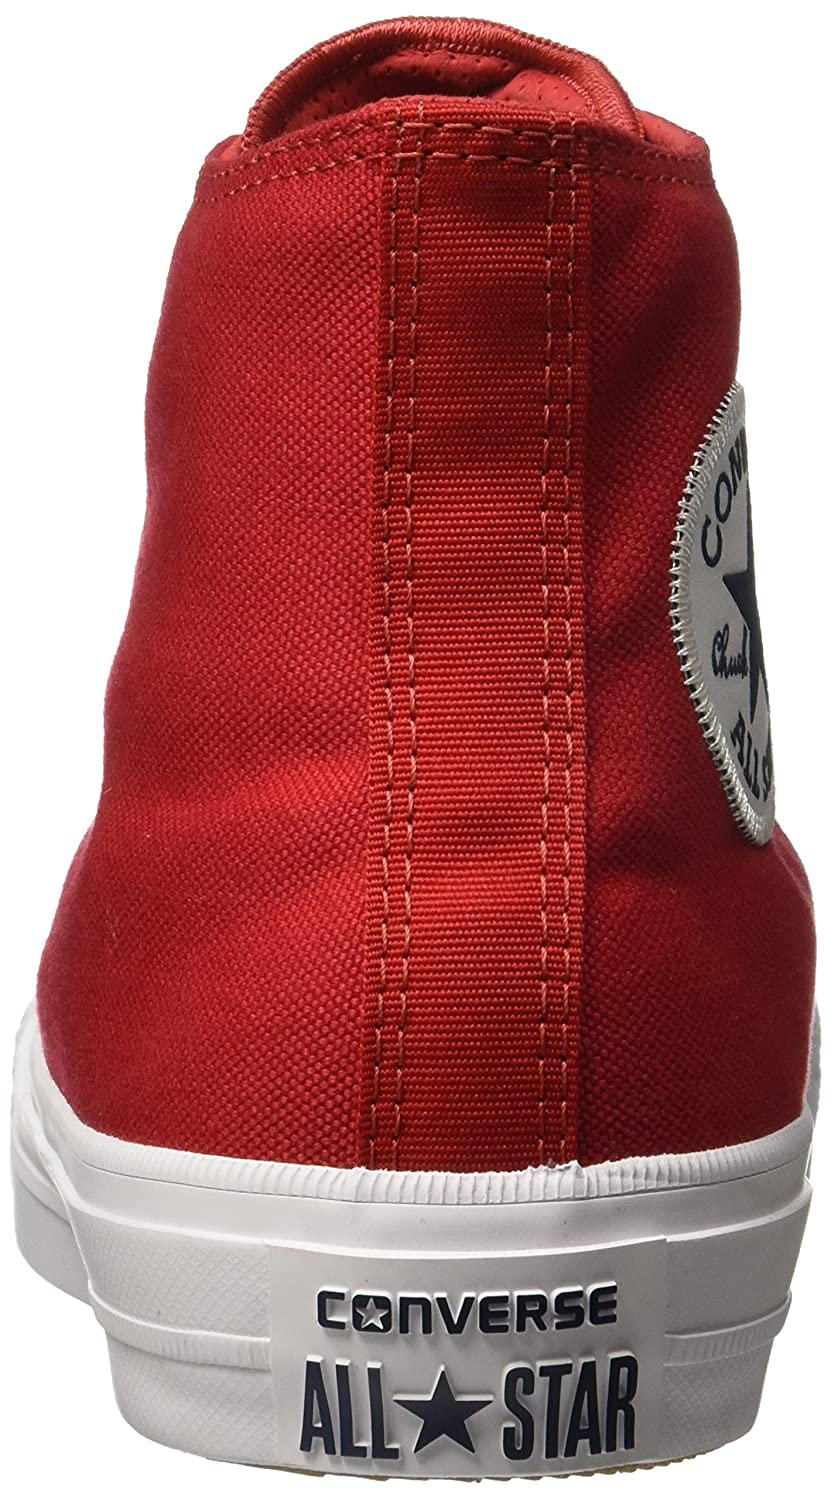 Converse Chuck Taylor All Star II High B010S59RH8 14 D(M) US|Salsa Red/White/Navy